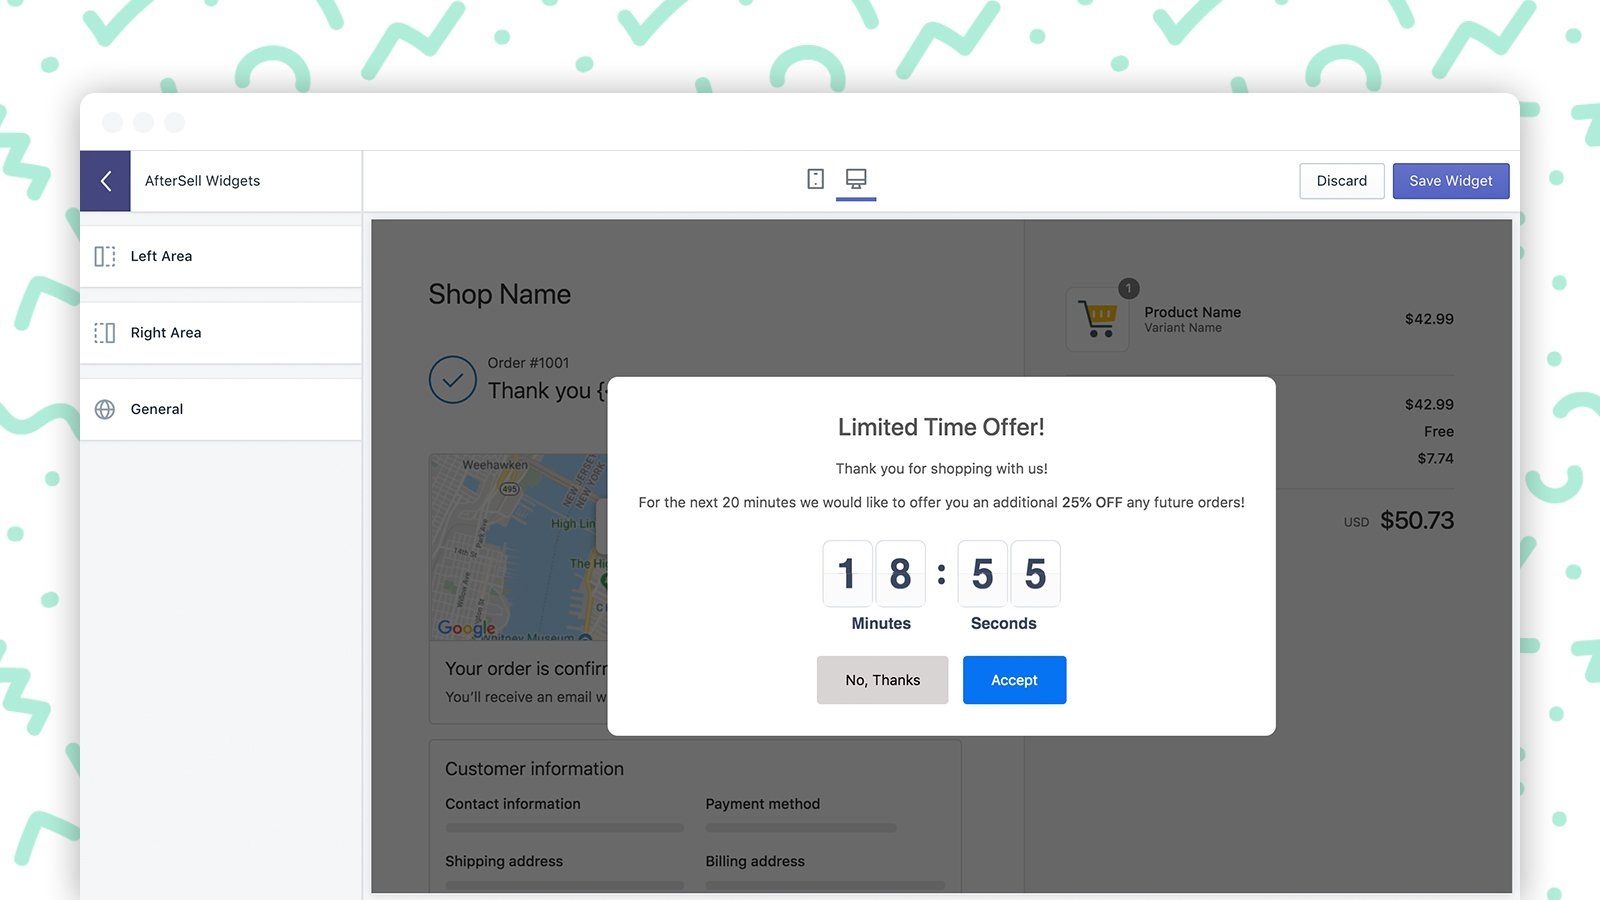 AfterSell Post Purchase Storewide Popup Discount